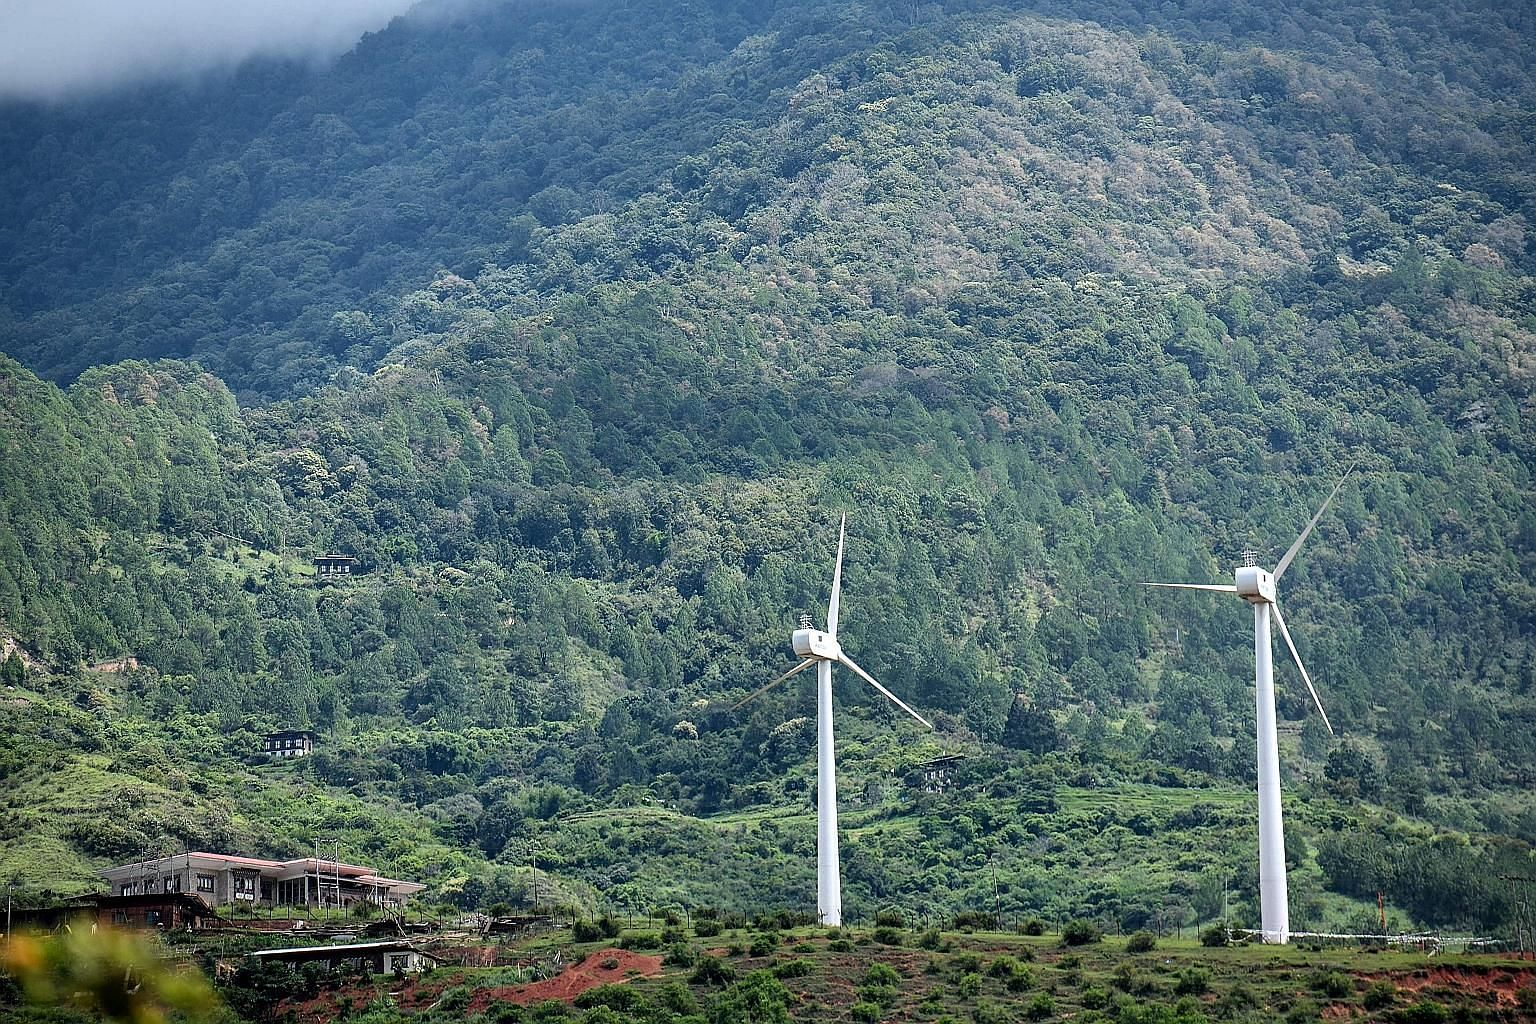 A pair of wind turbines in Rubesa village in Wangdue. They speak of Bhutan's giant stride as the only carbon negative country in the world.